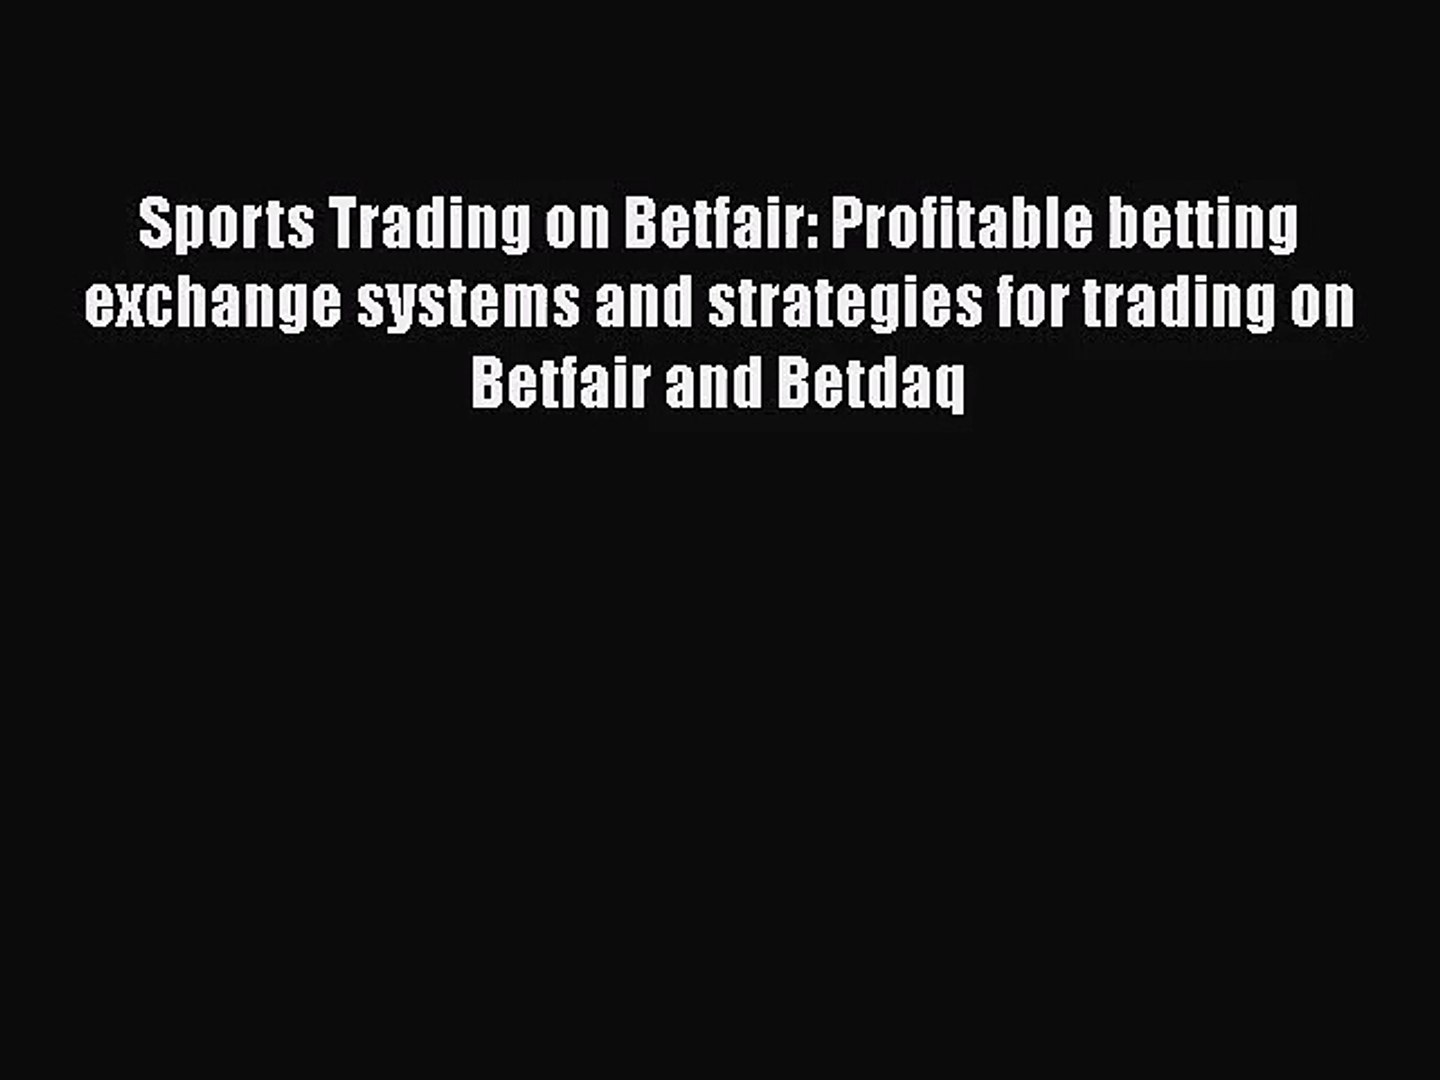 betting exchange systems